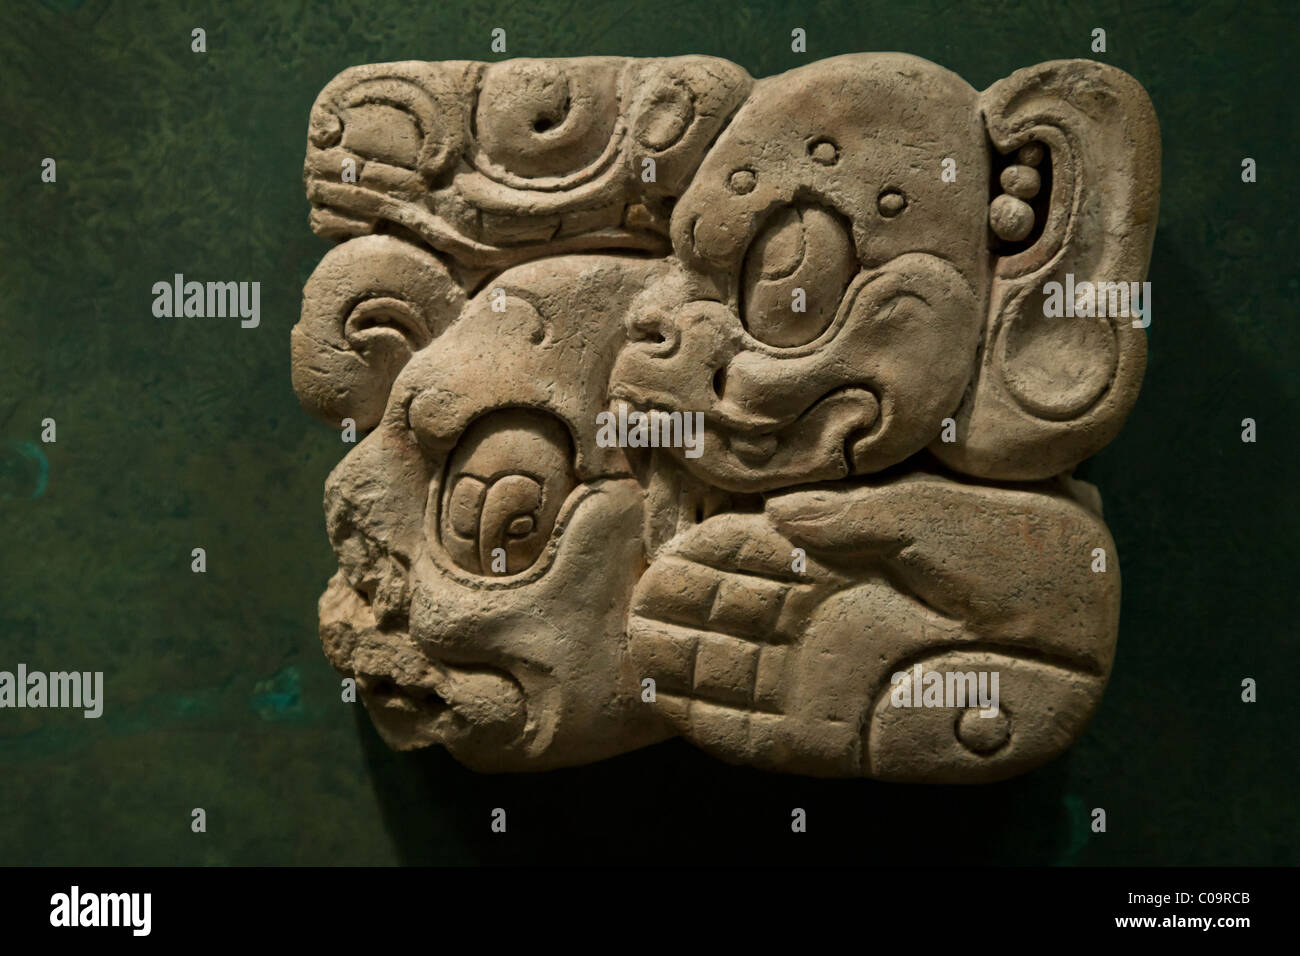 Maya gods portrait in a stucco glyph in the National Museum of Anthropology, Mexico City. - Stock Image